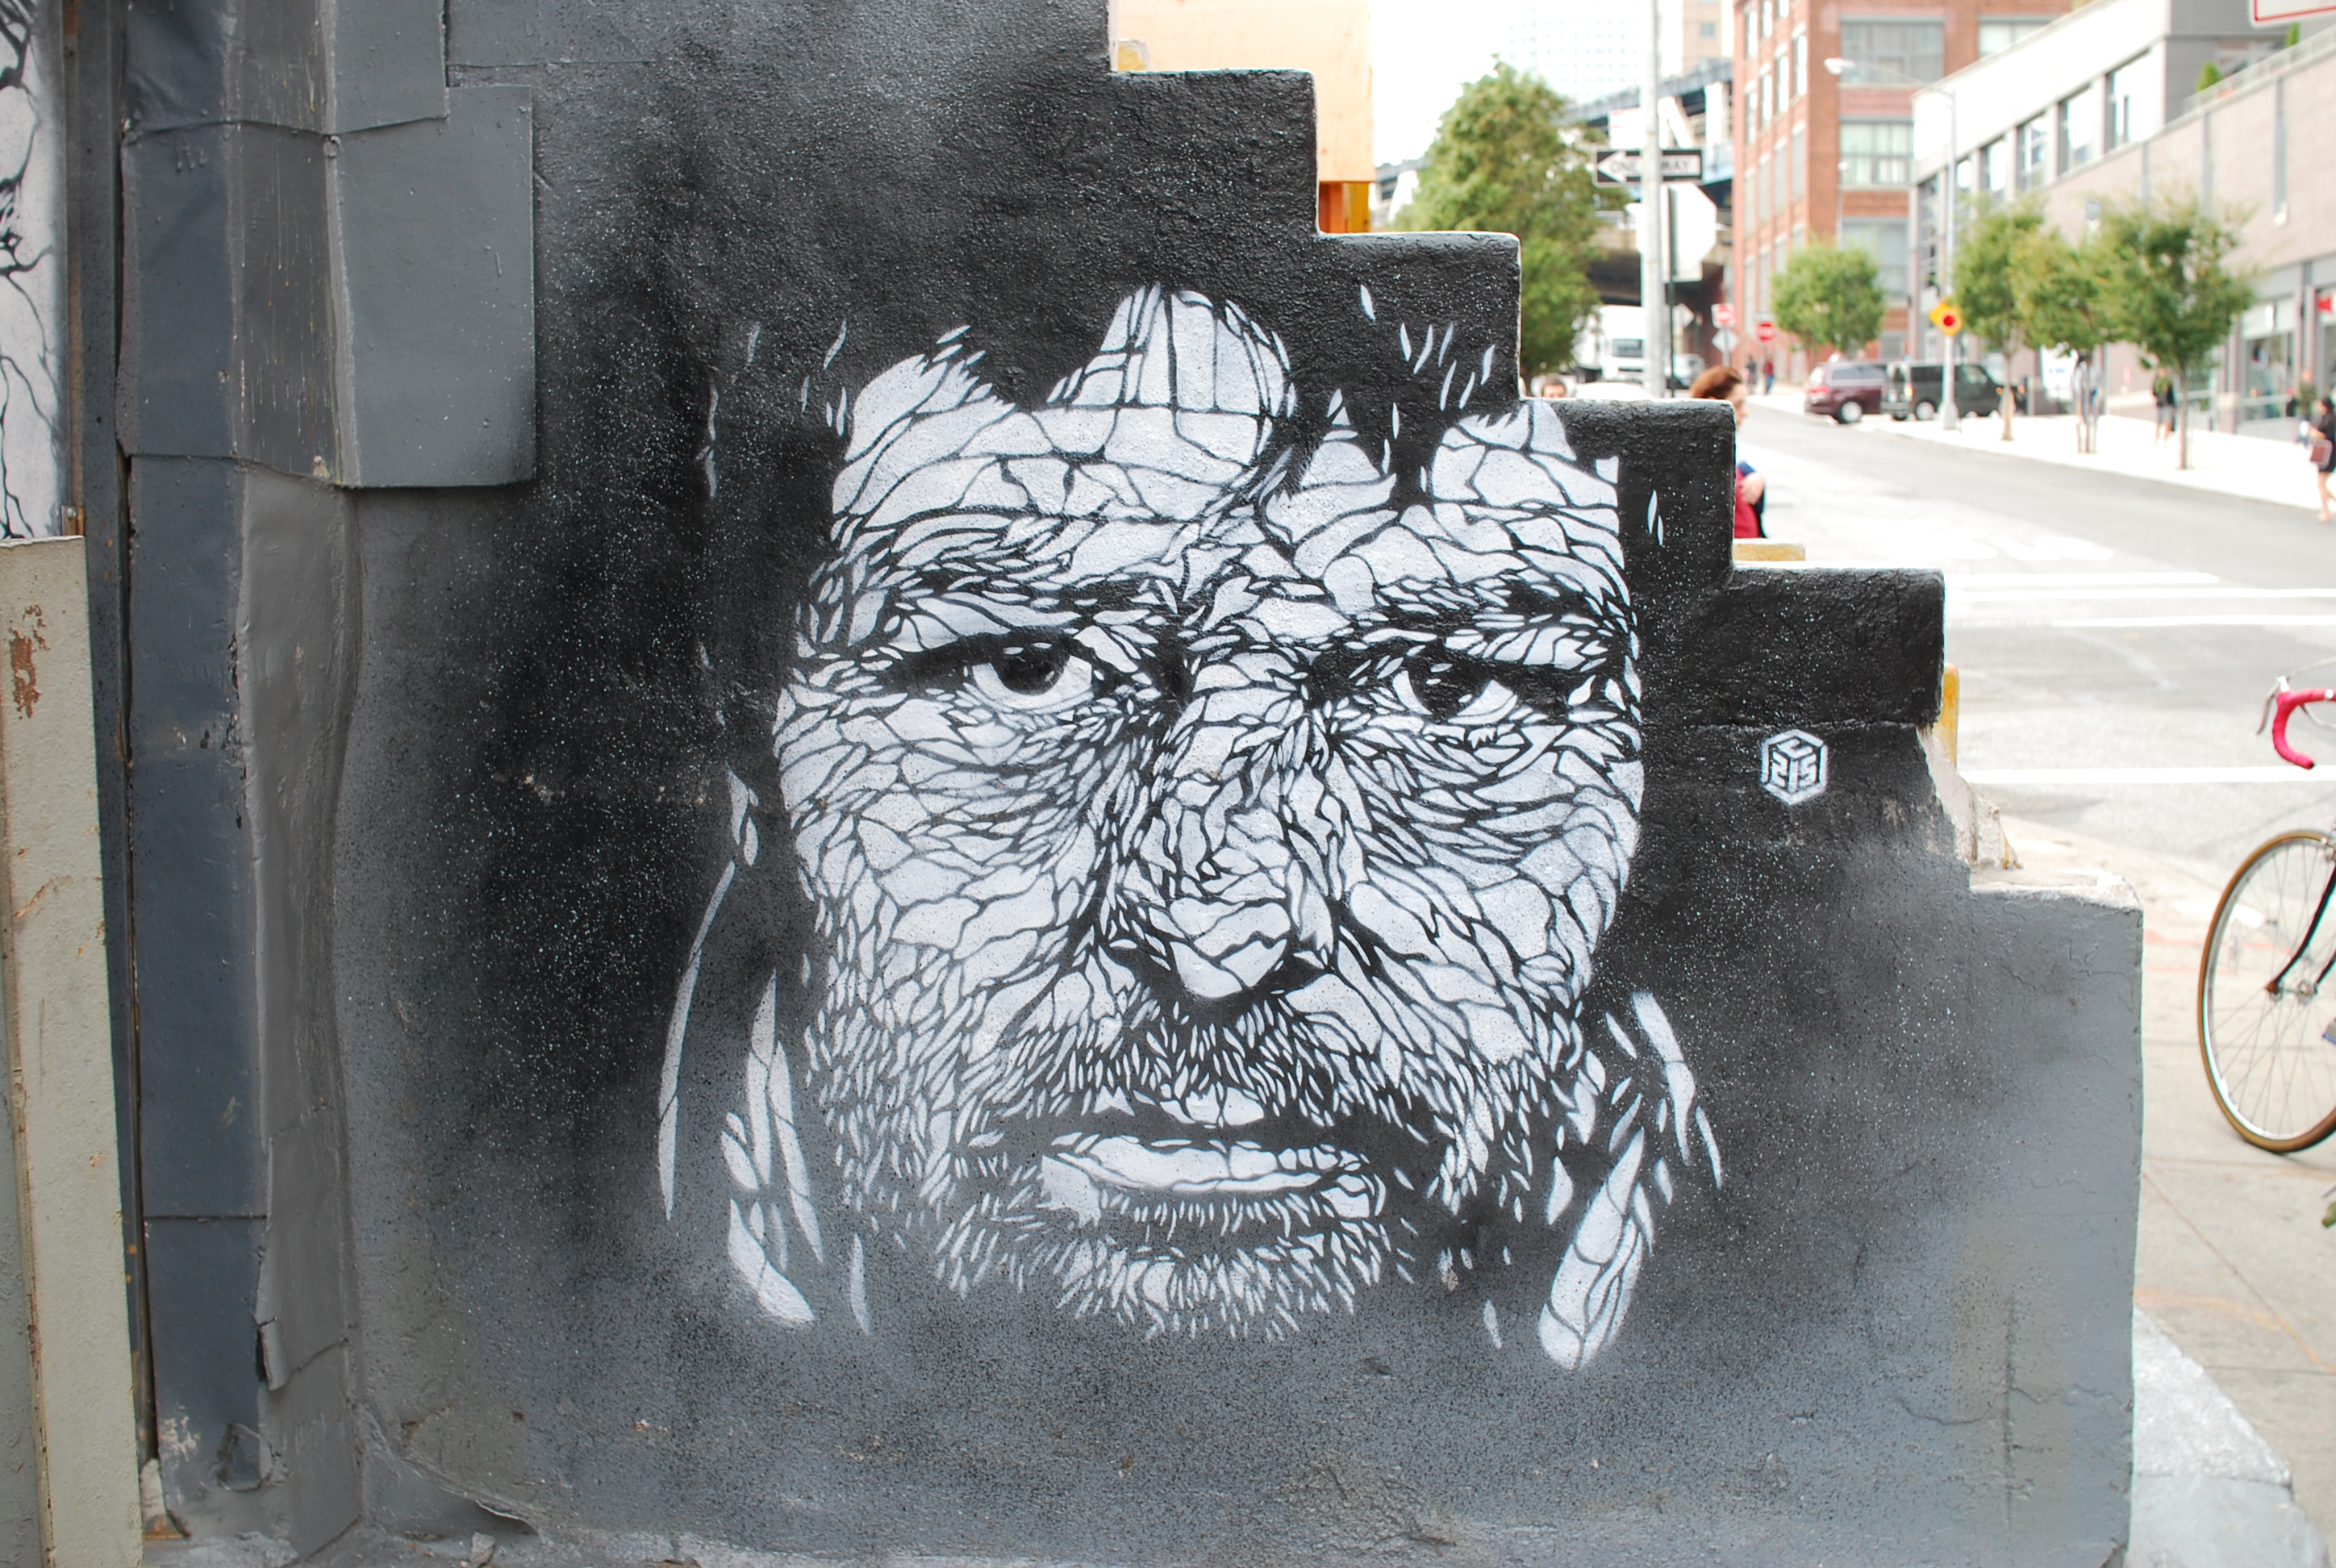 """c215 by dumbonyc on flickr"